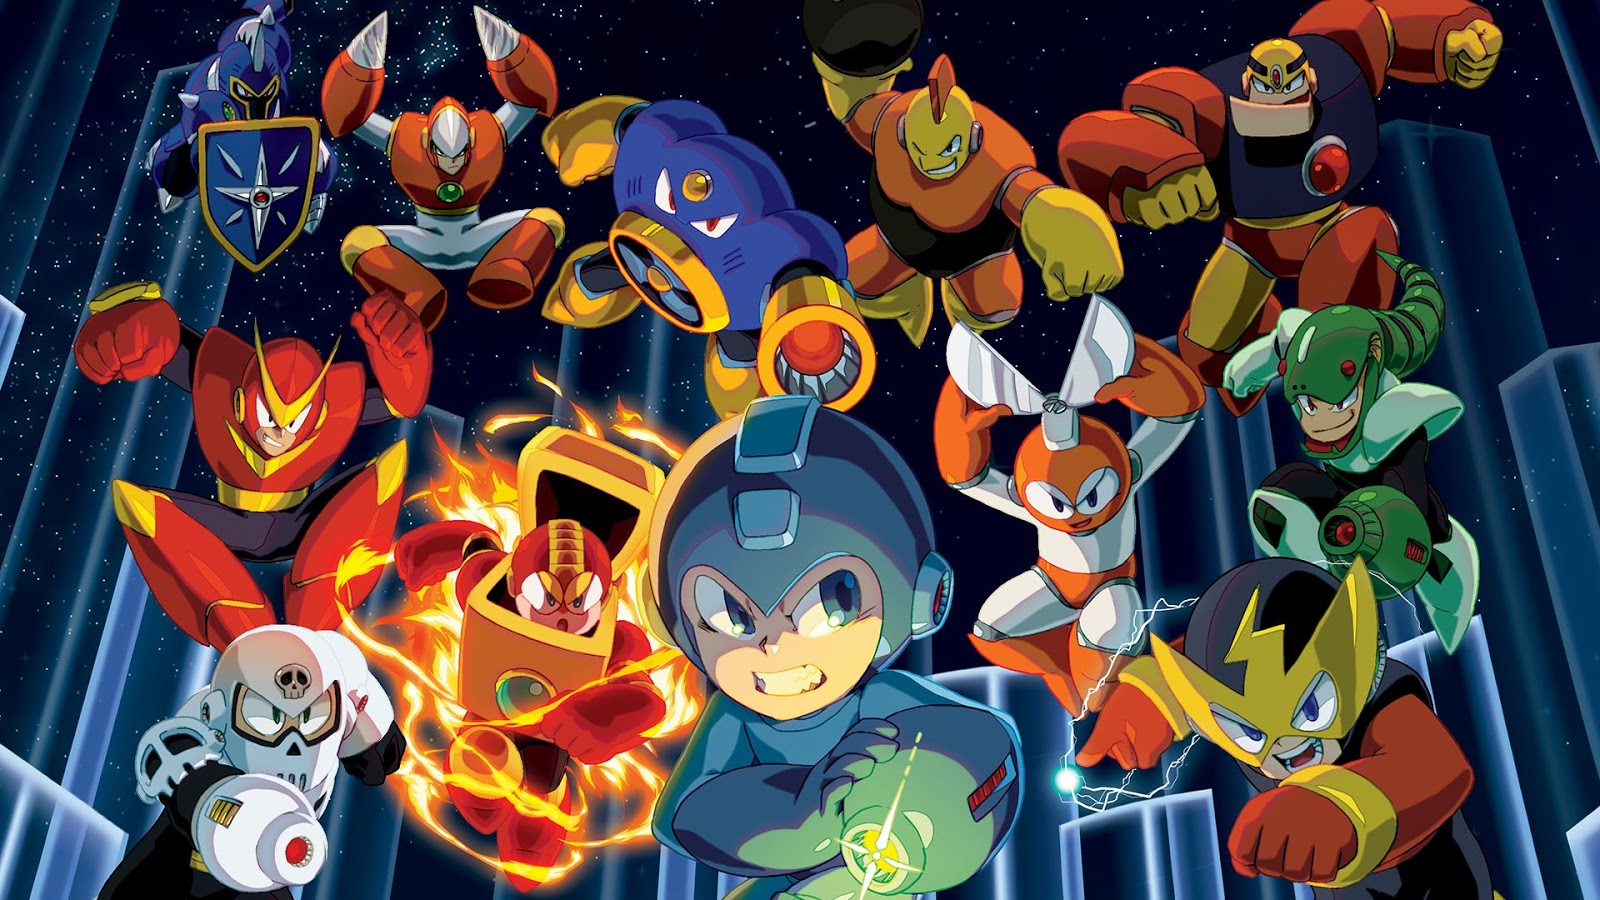 Mega Man 11 anunciado para PC, PS4, Xbox One e Nintendo Switch